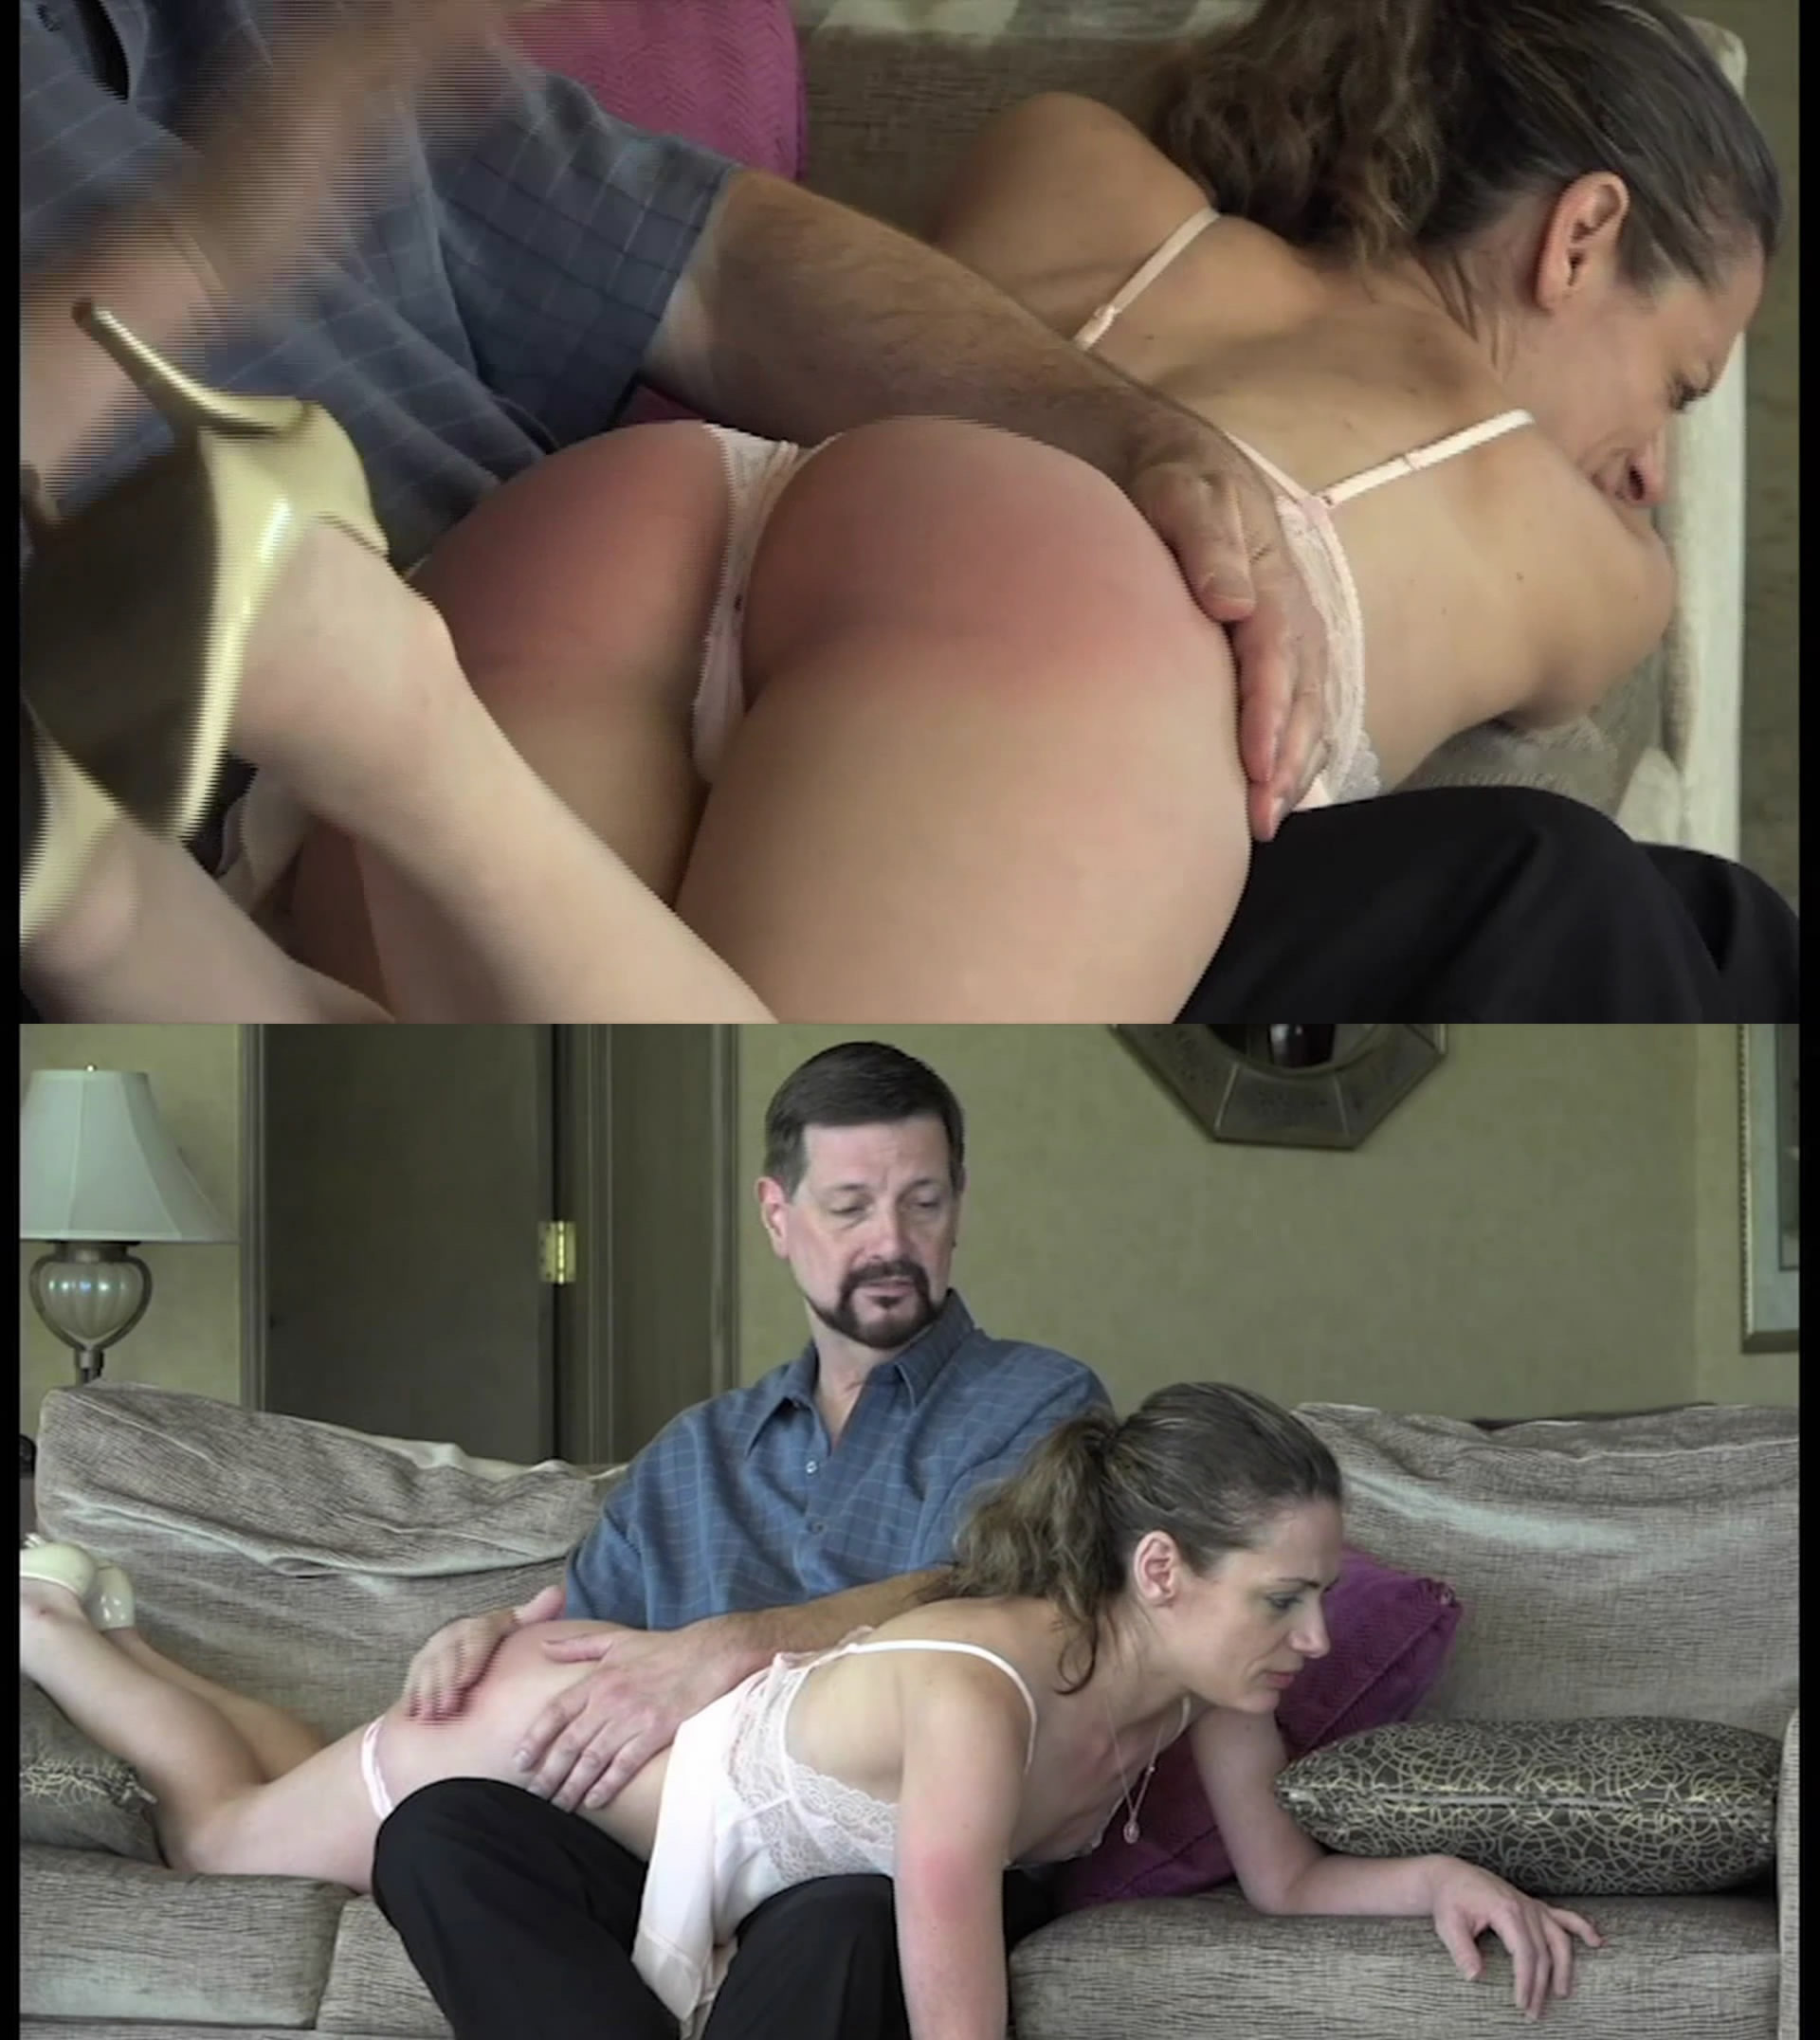 MP4/Full HD – Ten Amorette, Brian Tarsis – Ten Amorette Spanked in Lingerie